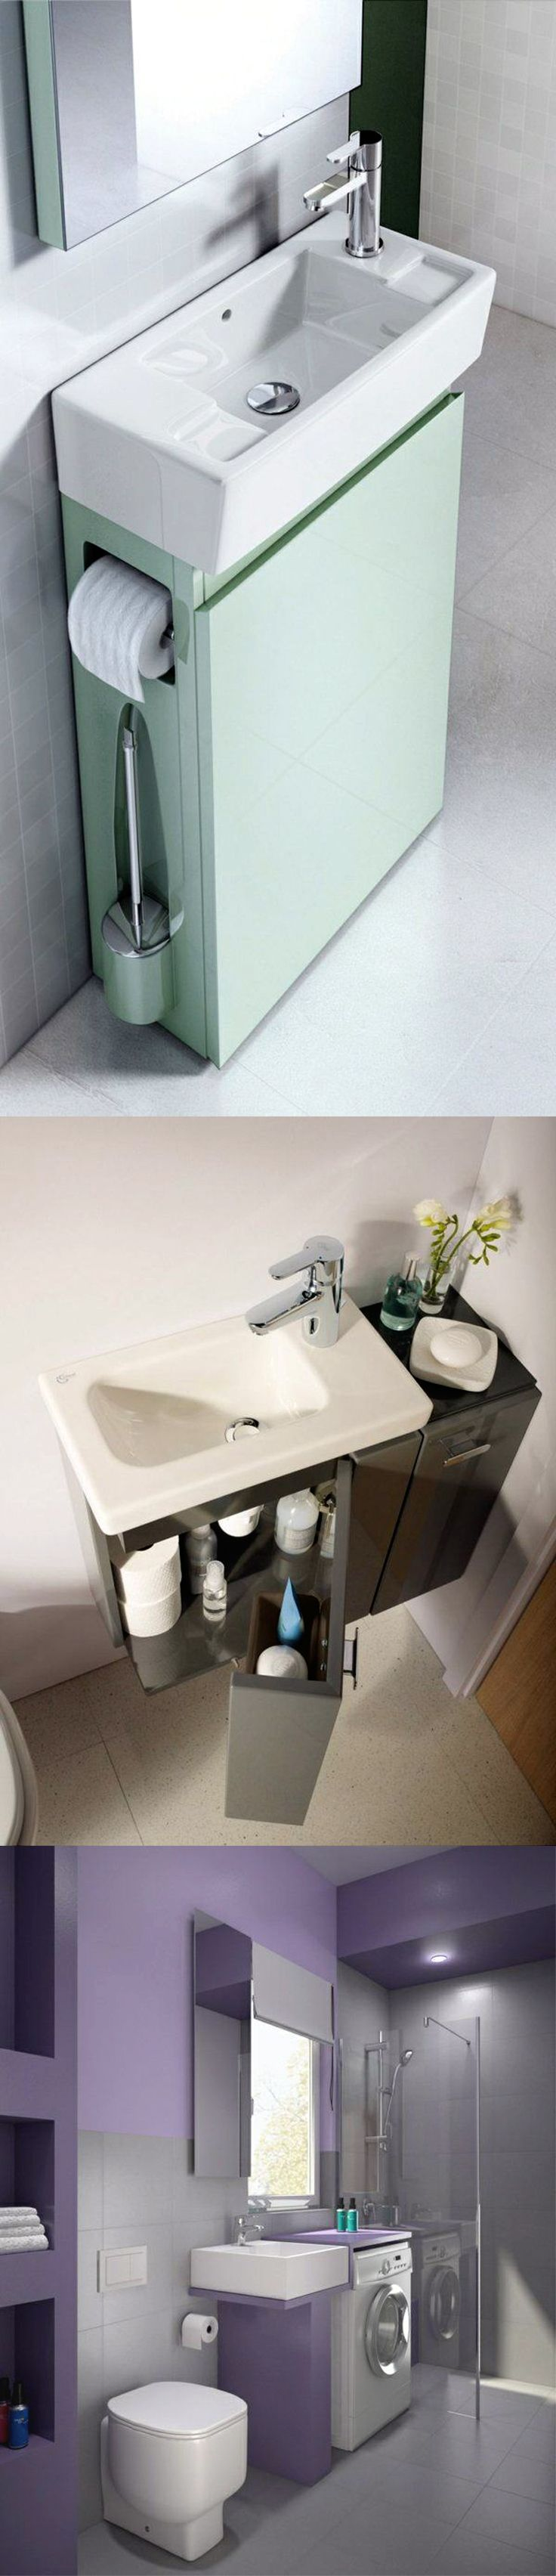 Small Bathroom Ideas: Space Saving Modern Bathroom Furniture; Practical  Cabinet Sink; Washing